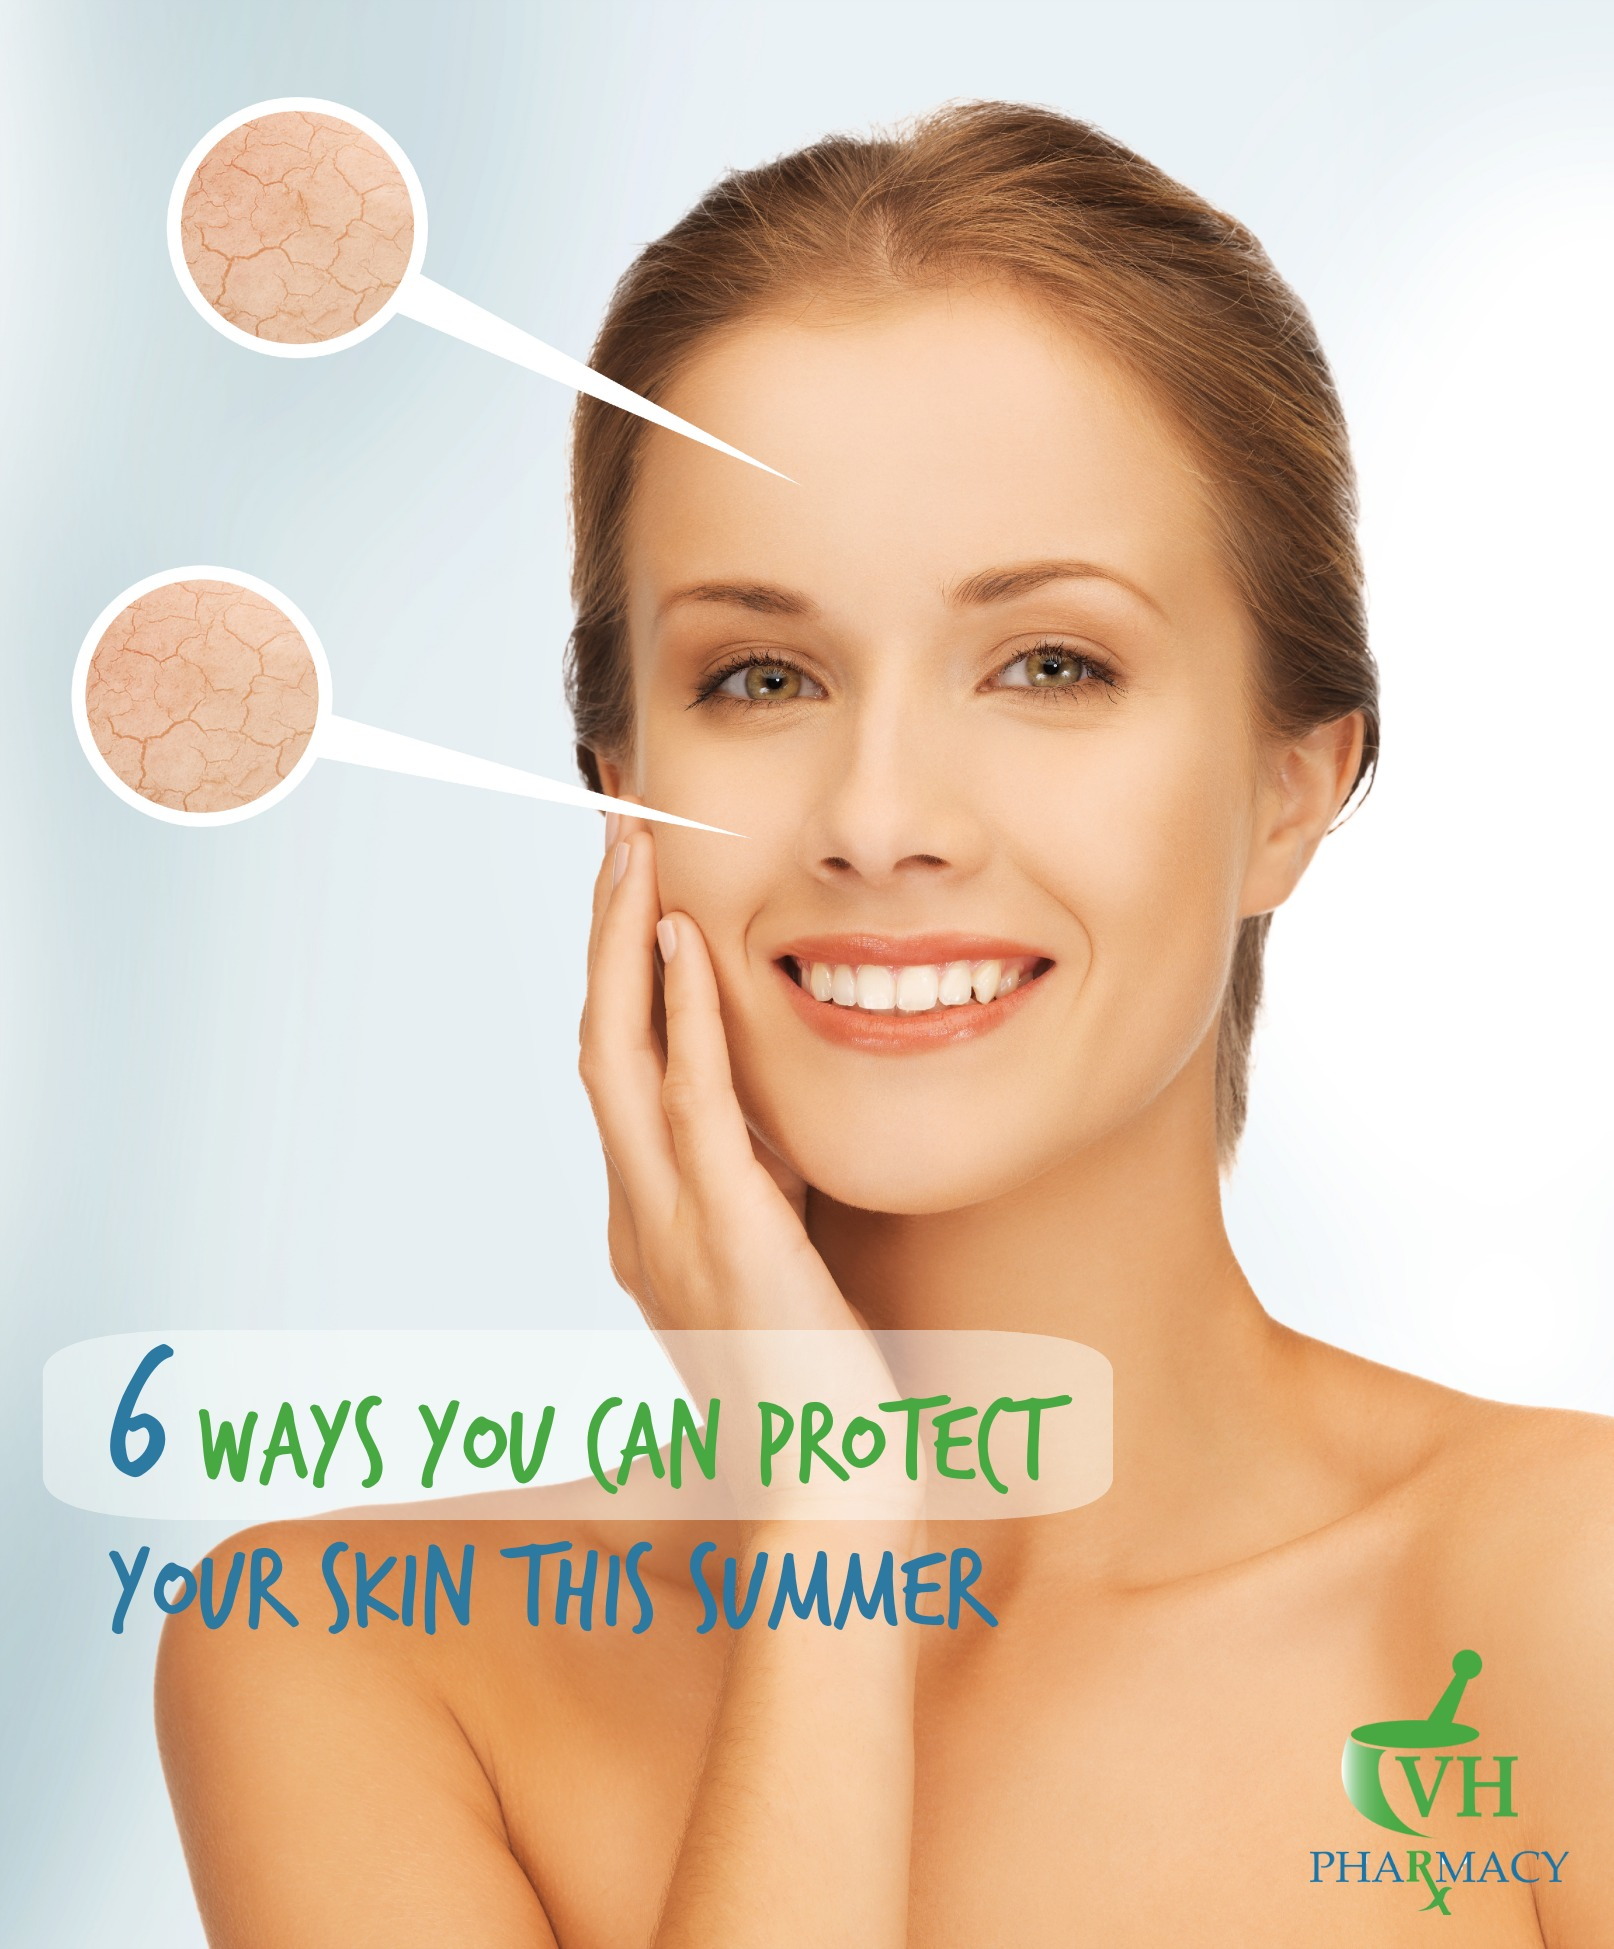 Six Tips For Keeping Your Skin Healthy This Summer